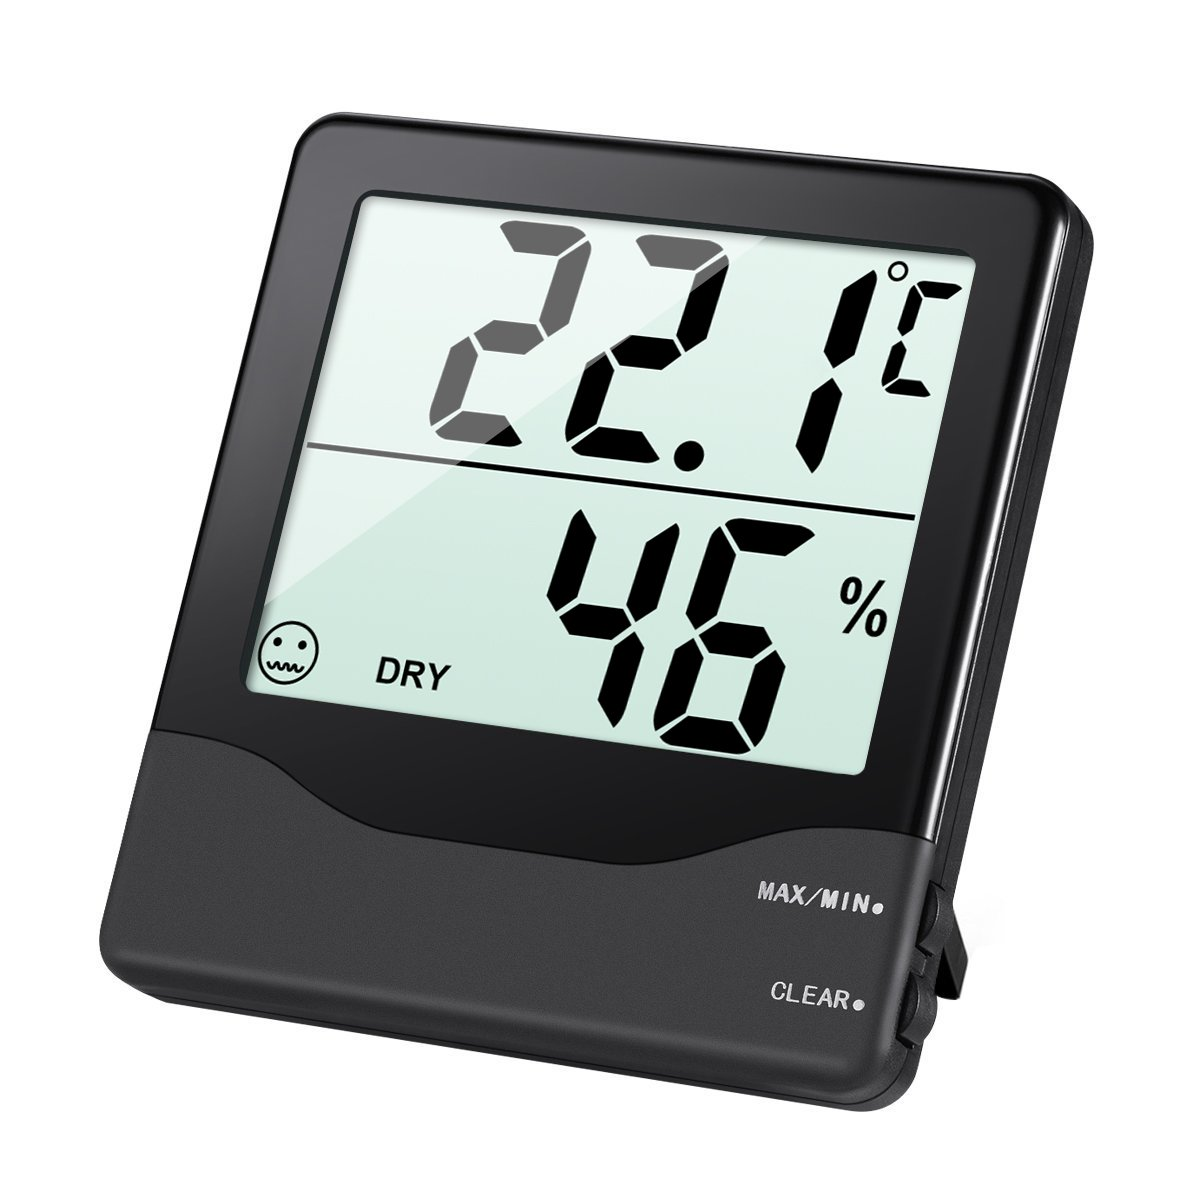 AMIR Indoor Hygrometer Thermometer, Digital Temperature and Humidity Monitor with LCD Screen, MIN/MAX Records, °C/°F switch, Comfort Indicators Multifunctional for Home, Office, Baby Room, etc °C/°F switch Weather Station